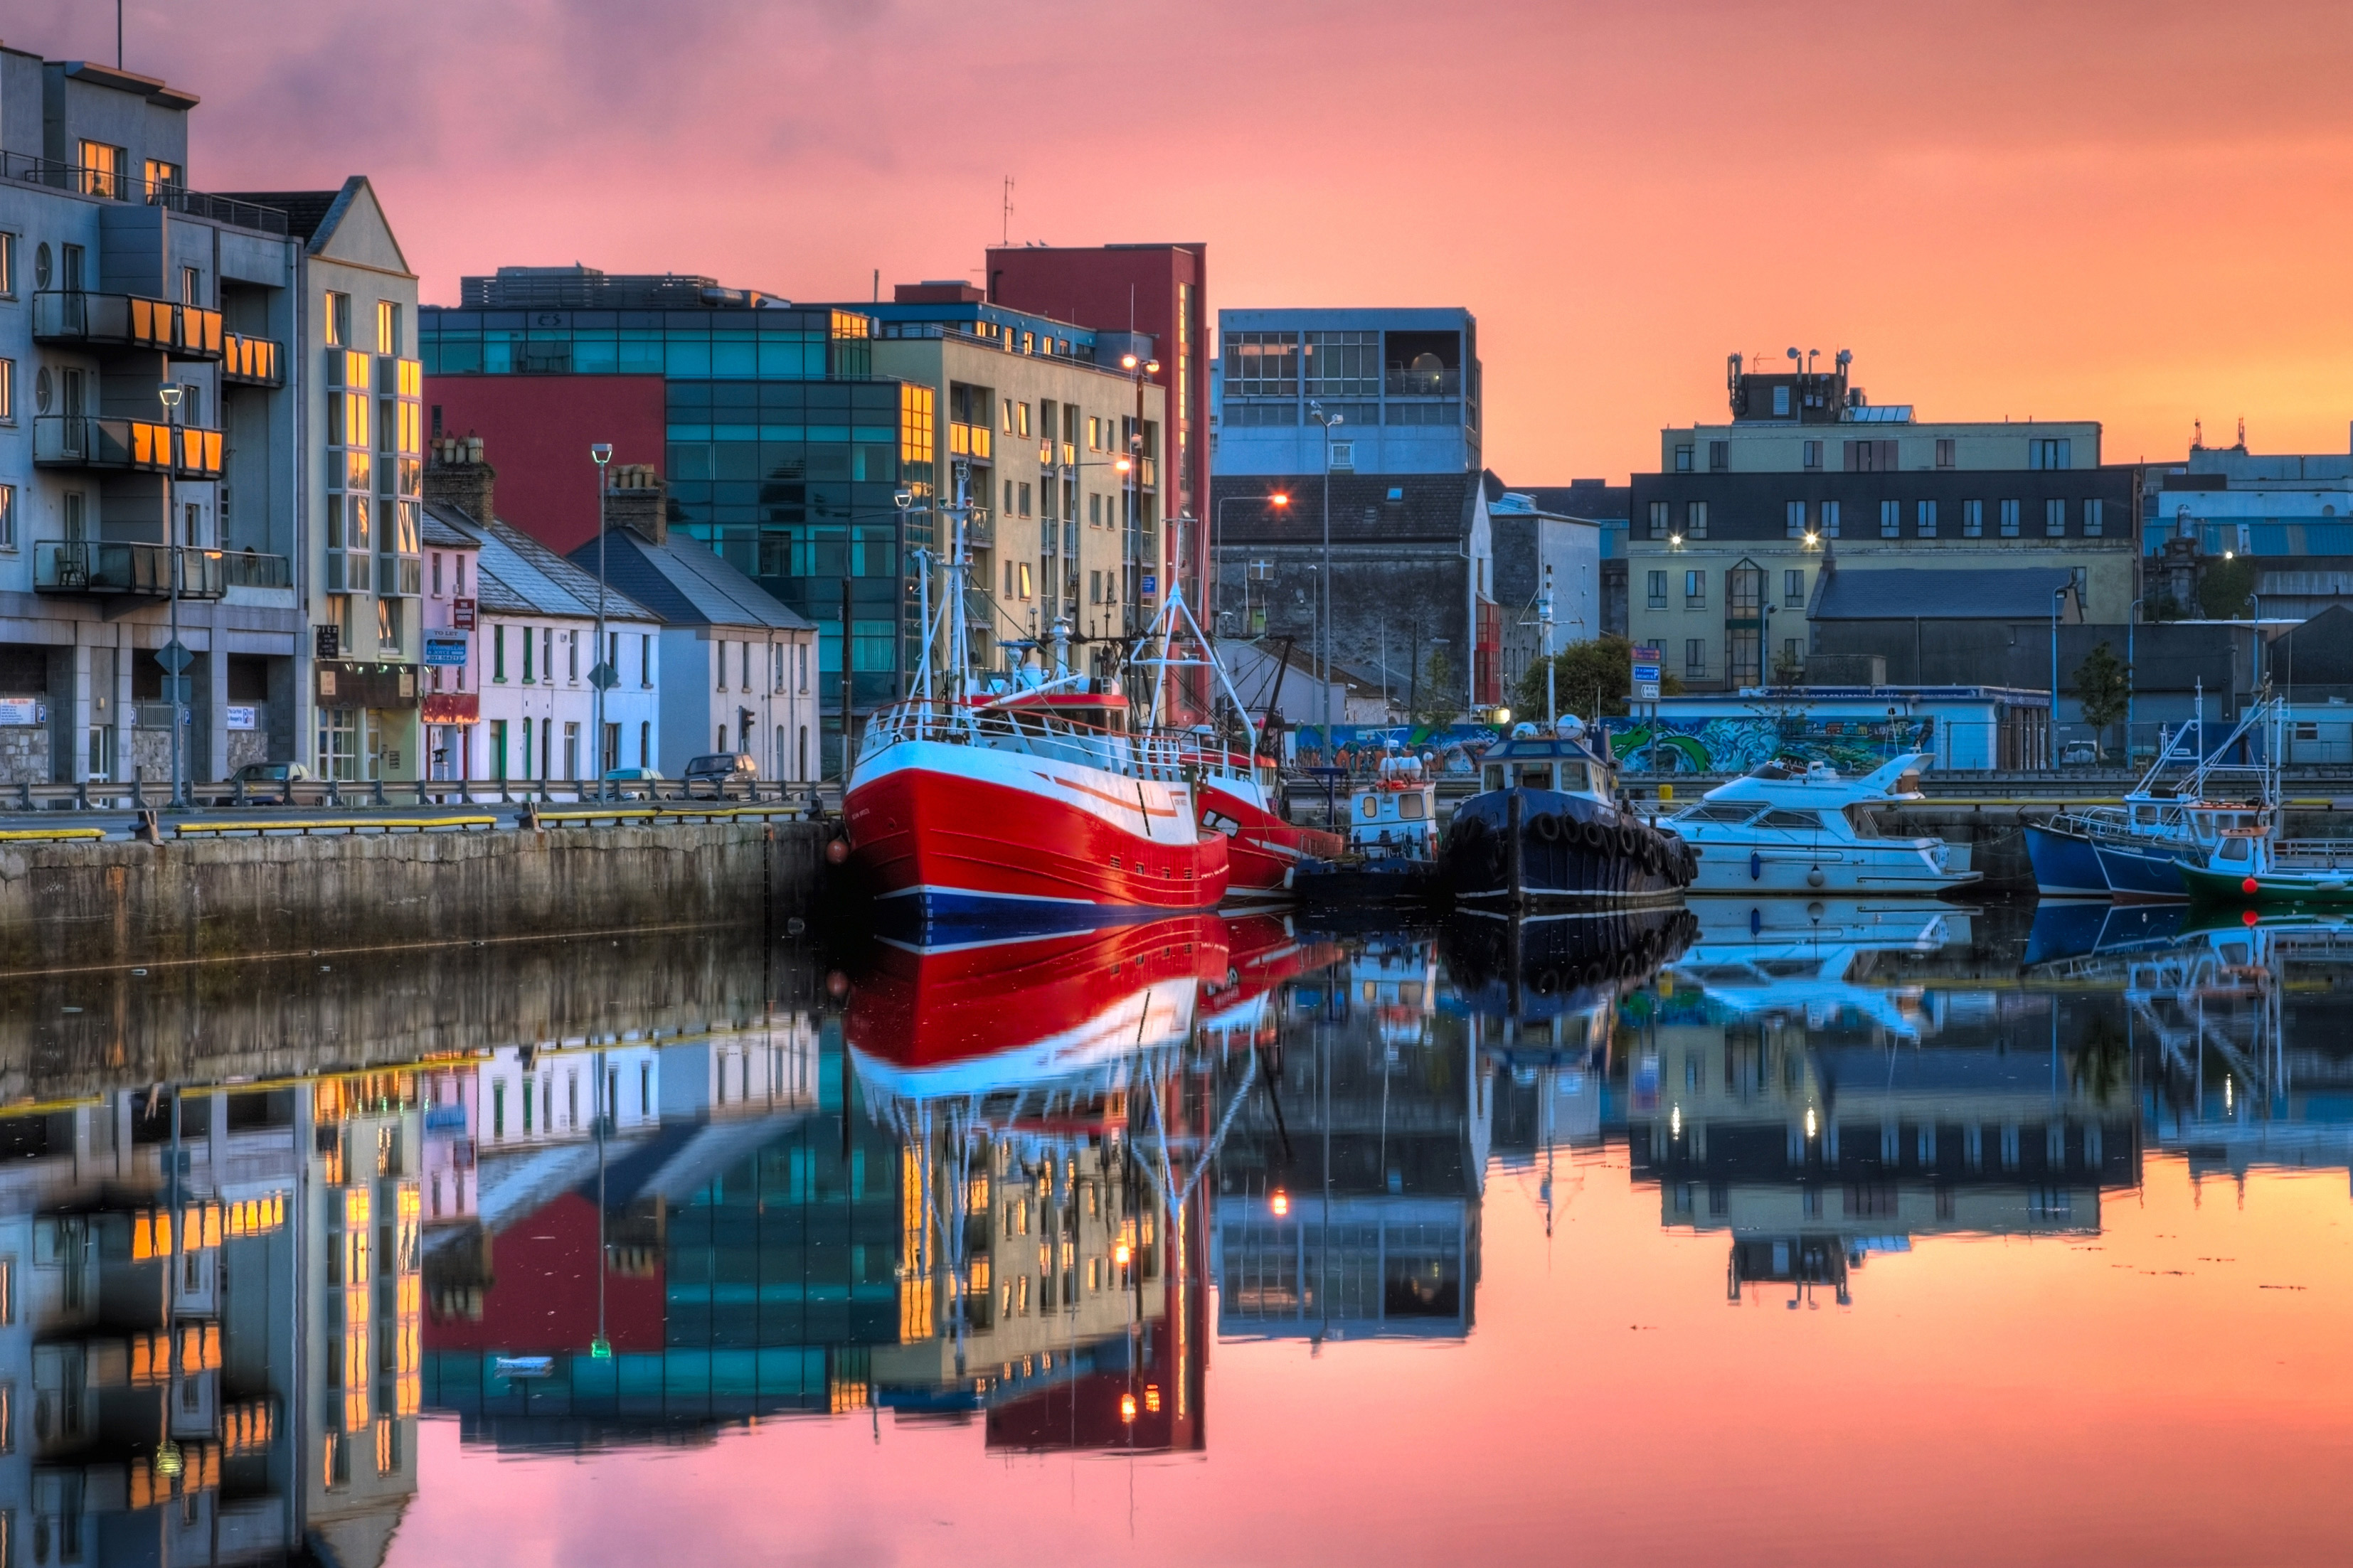 Harbour in Galway, Ireland